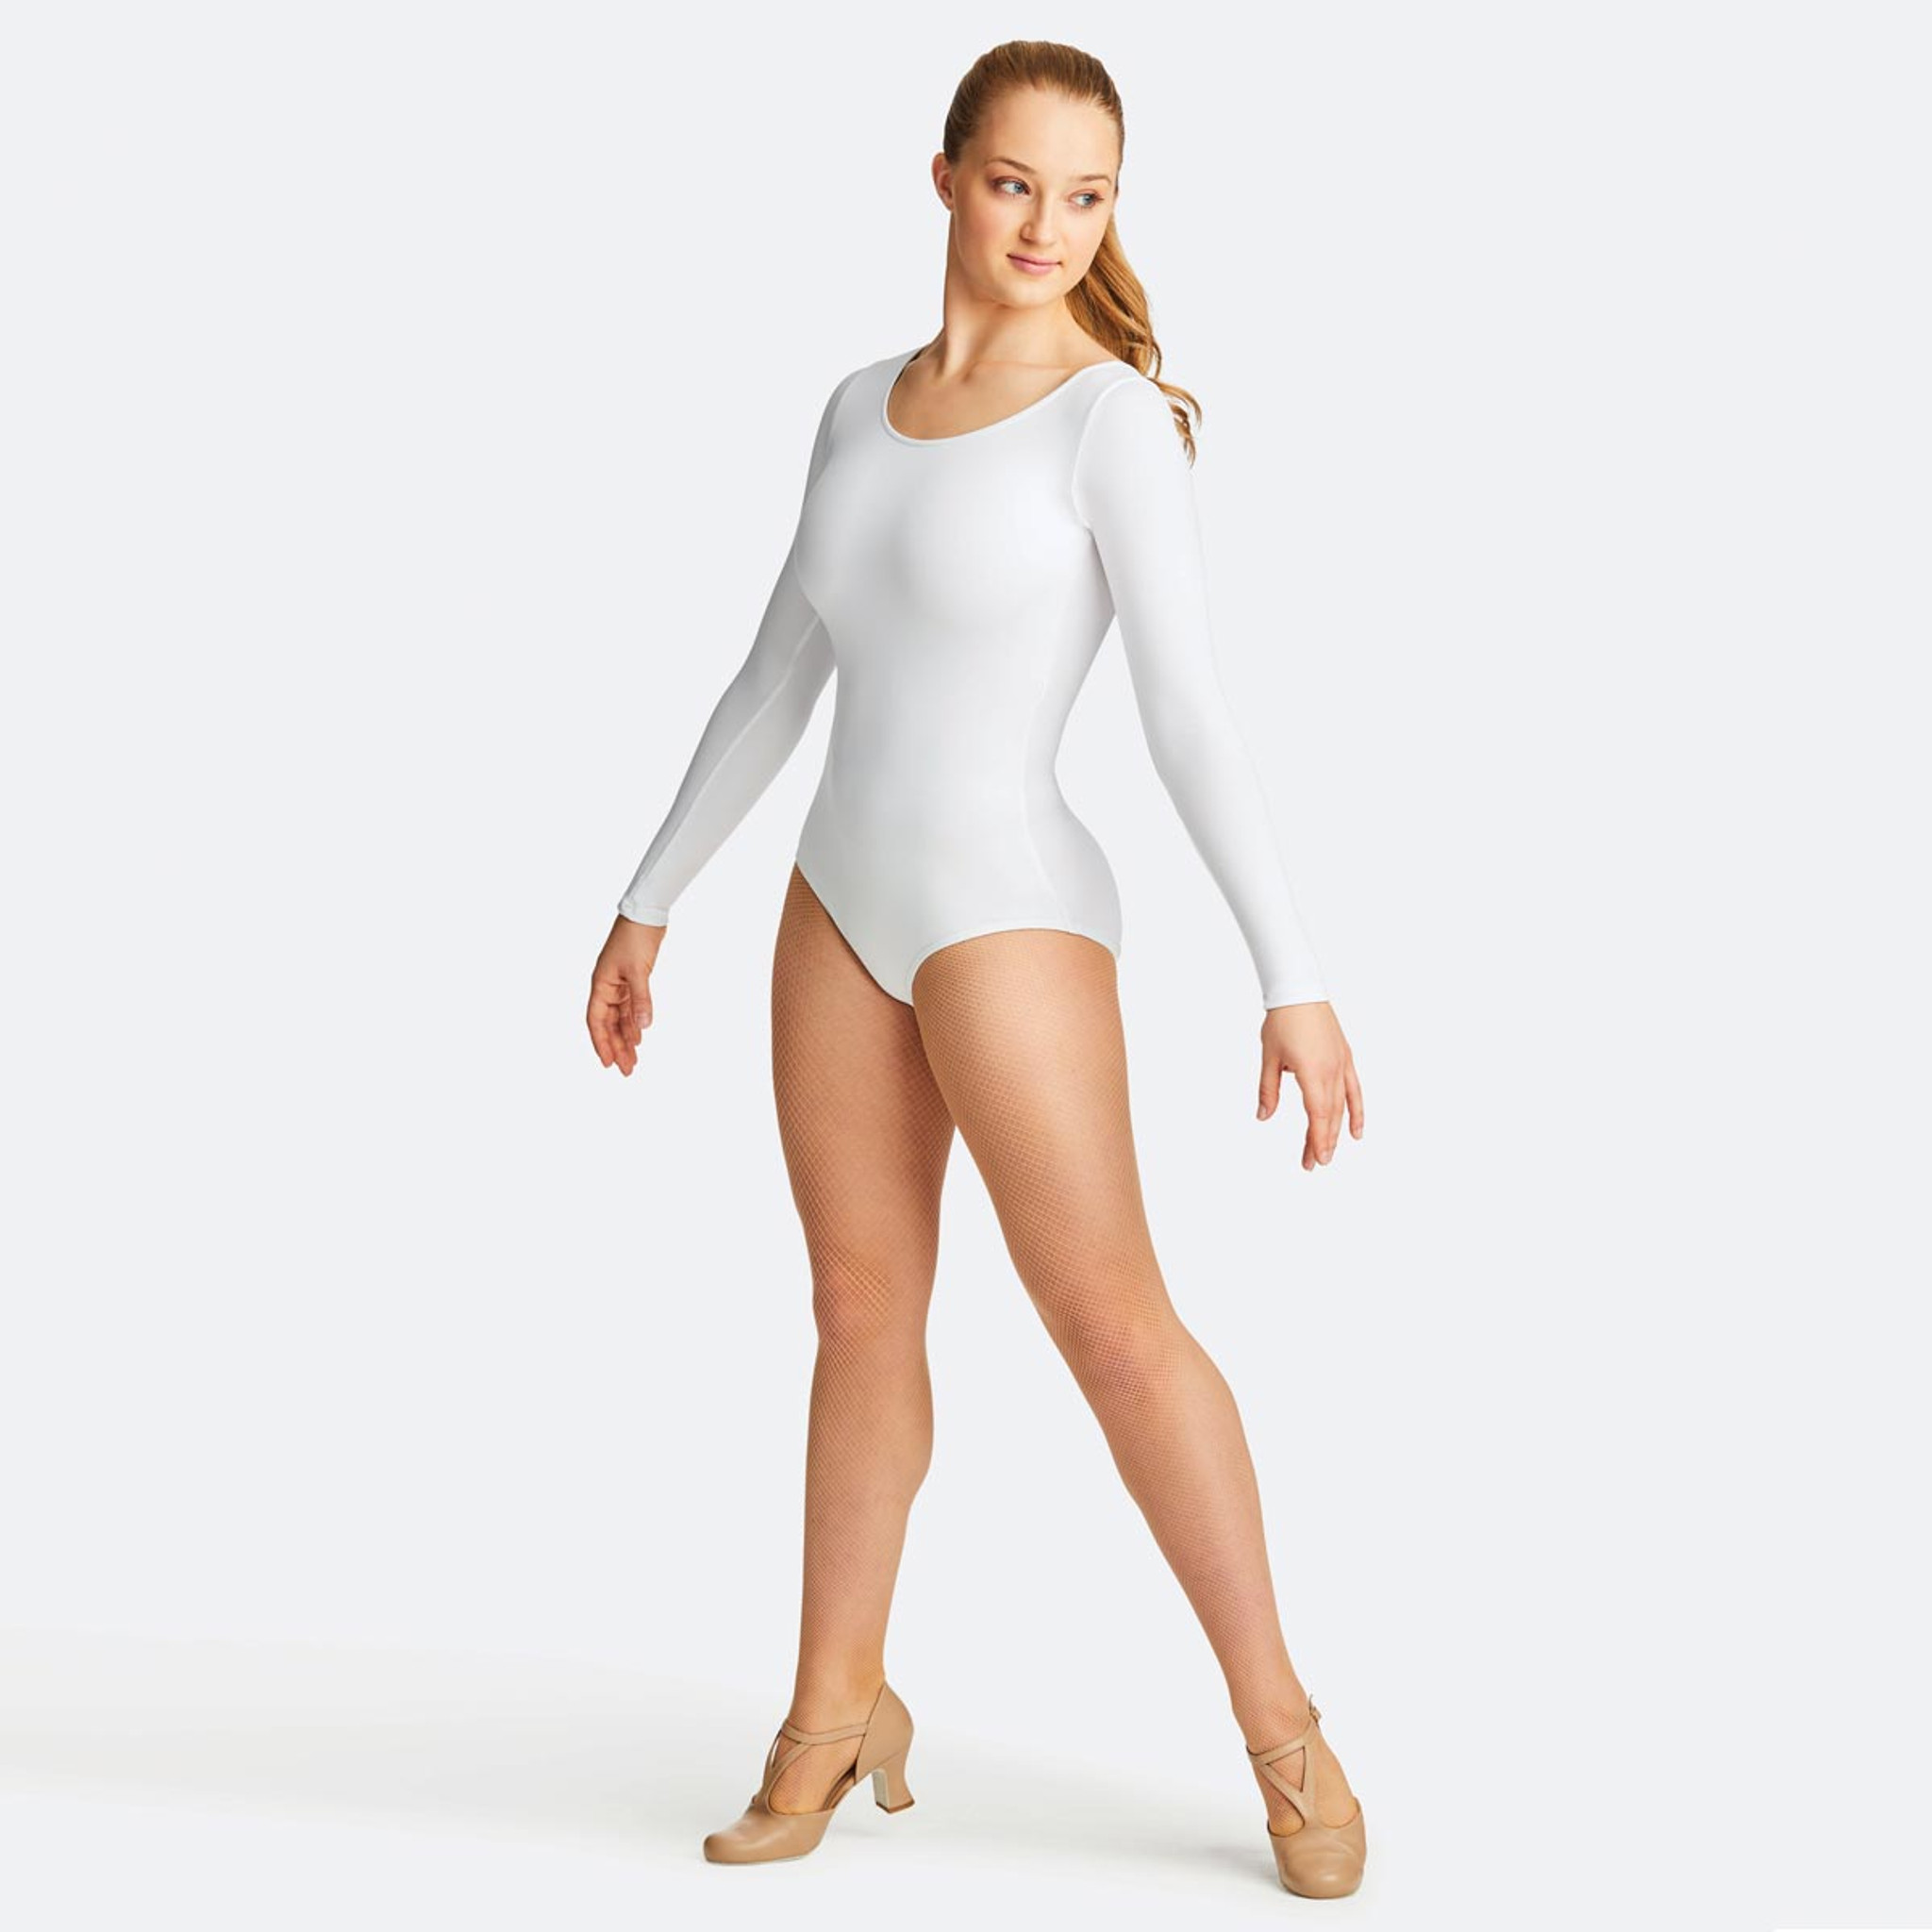 f59d76b1ef19 Capezio Long Sleeve Leotard - Ladies Dancewear - DANCE DIRECT®